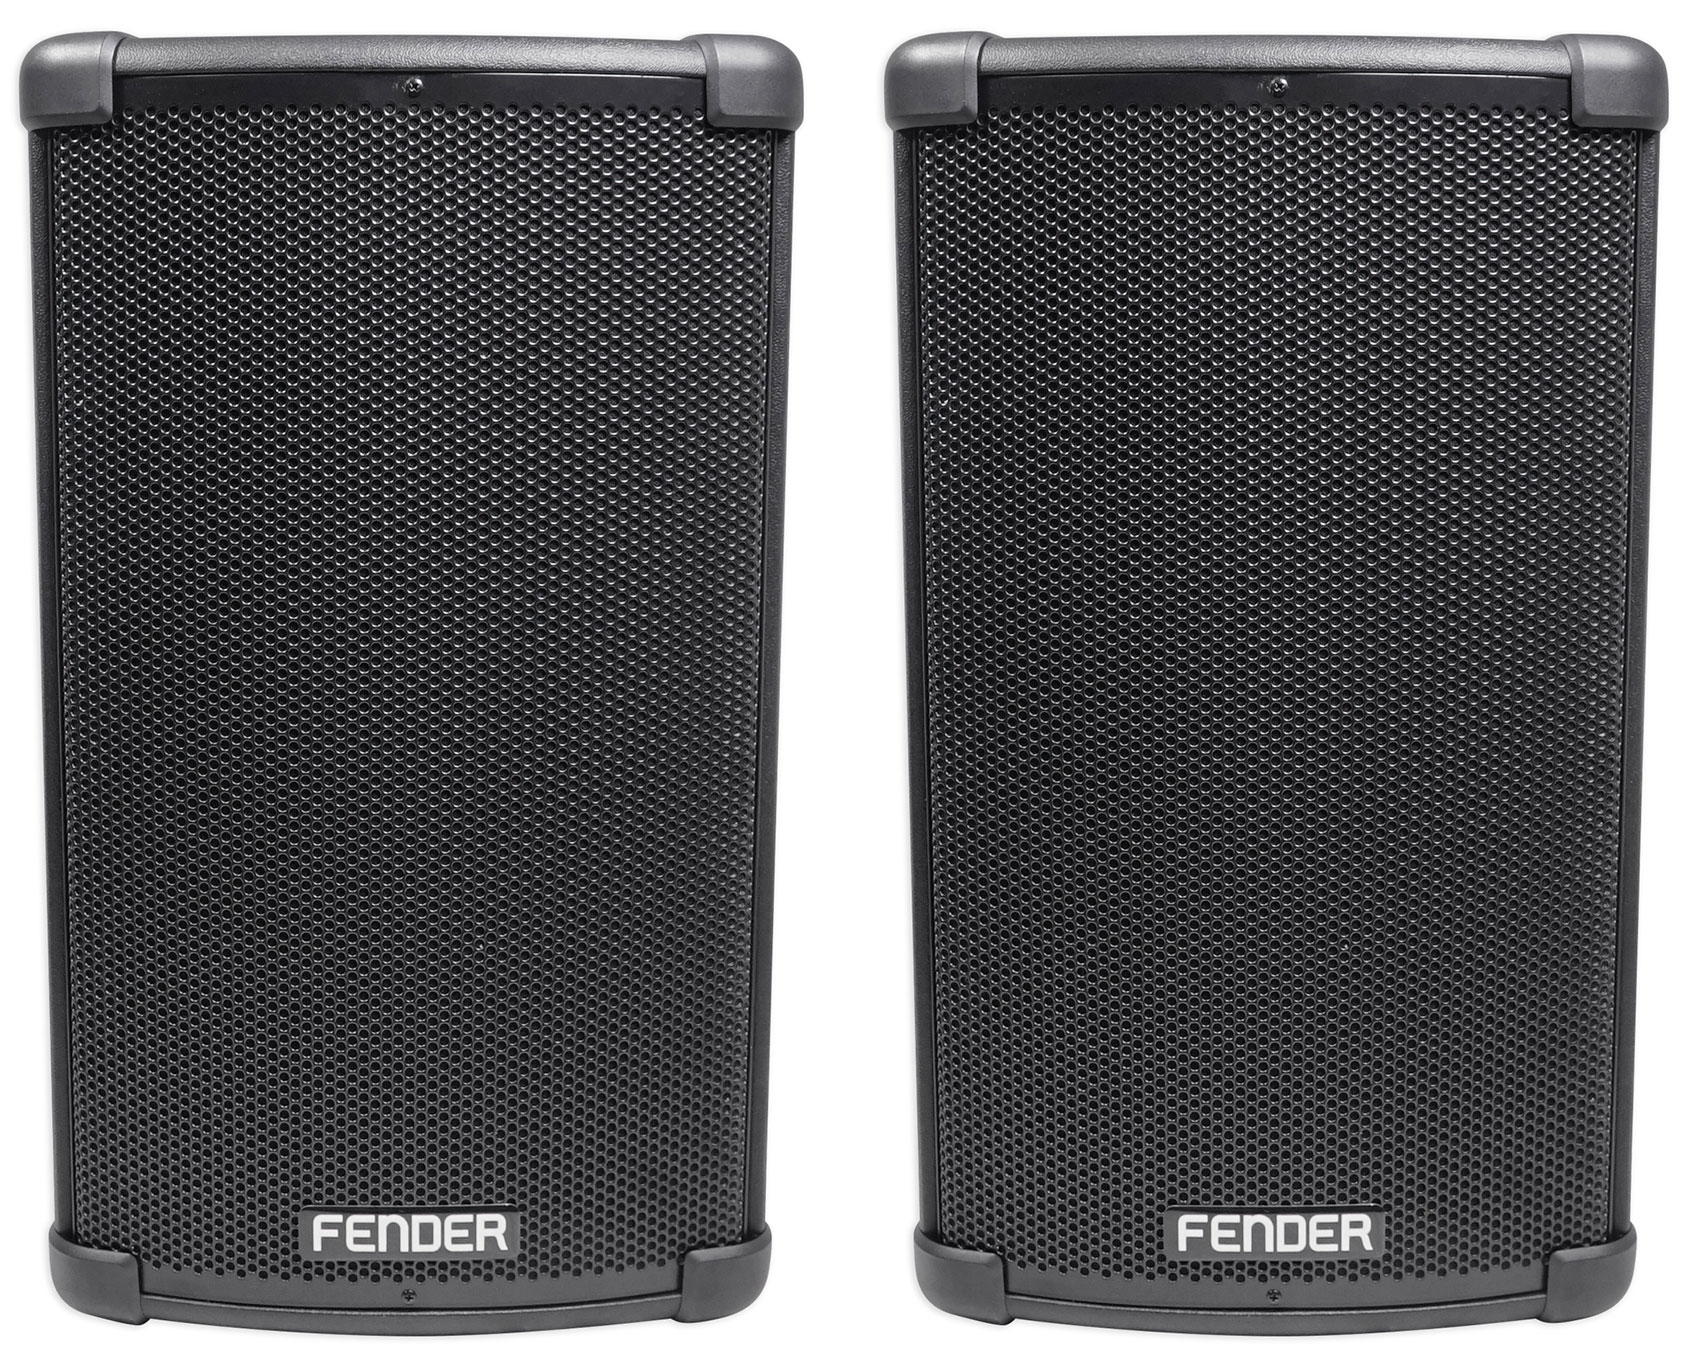 "(2) FENDER FIGHTER 10"" 2200w Powered DJ PA Speakers w  Bluetooth, Wood Enclosure by Fender"